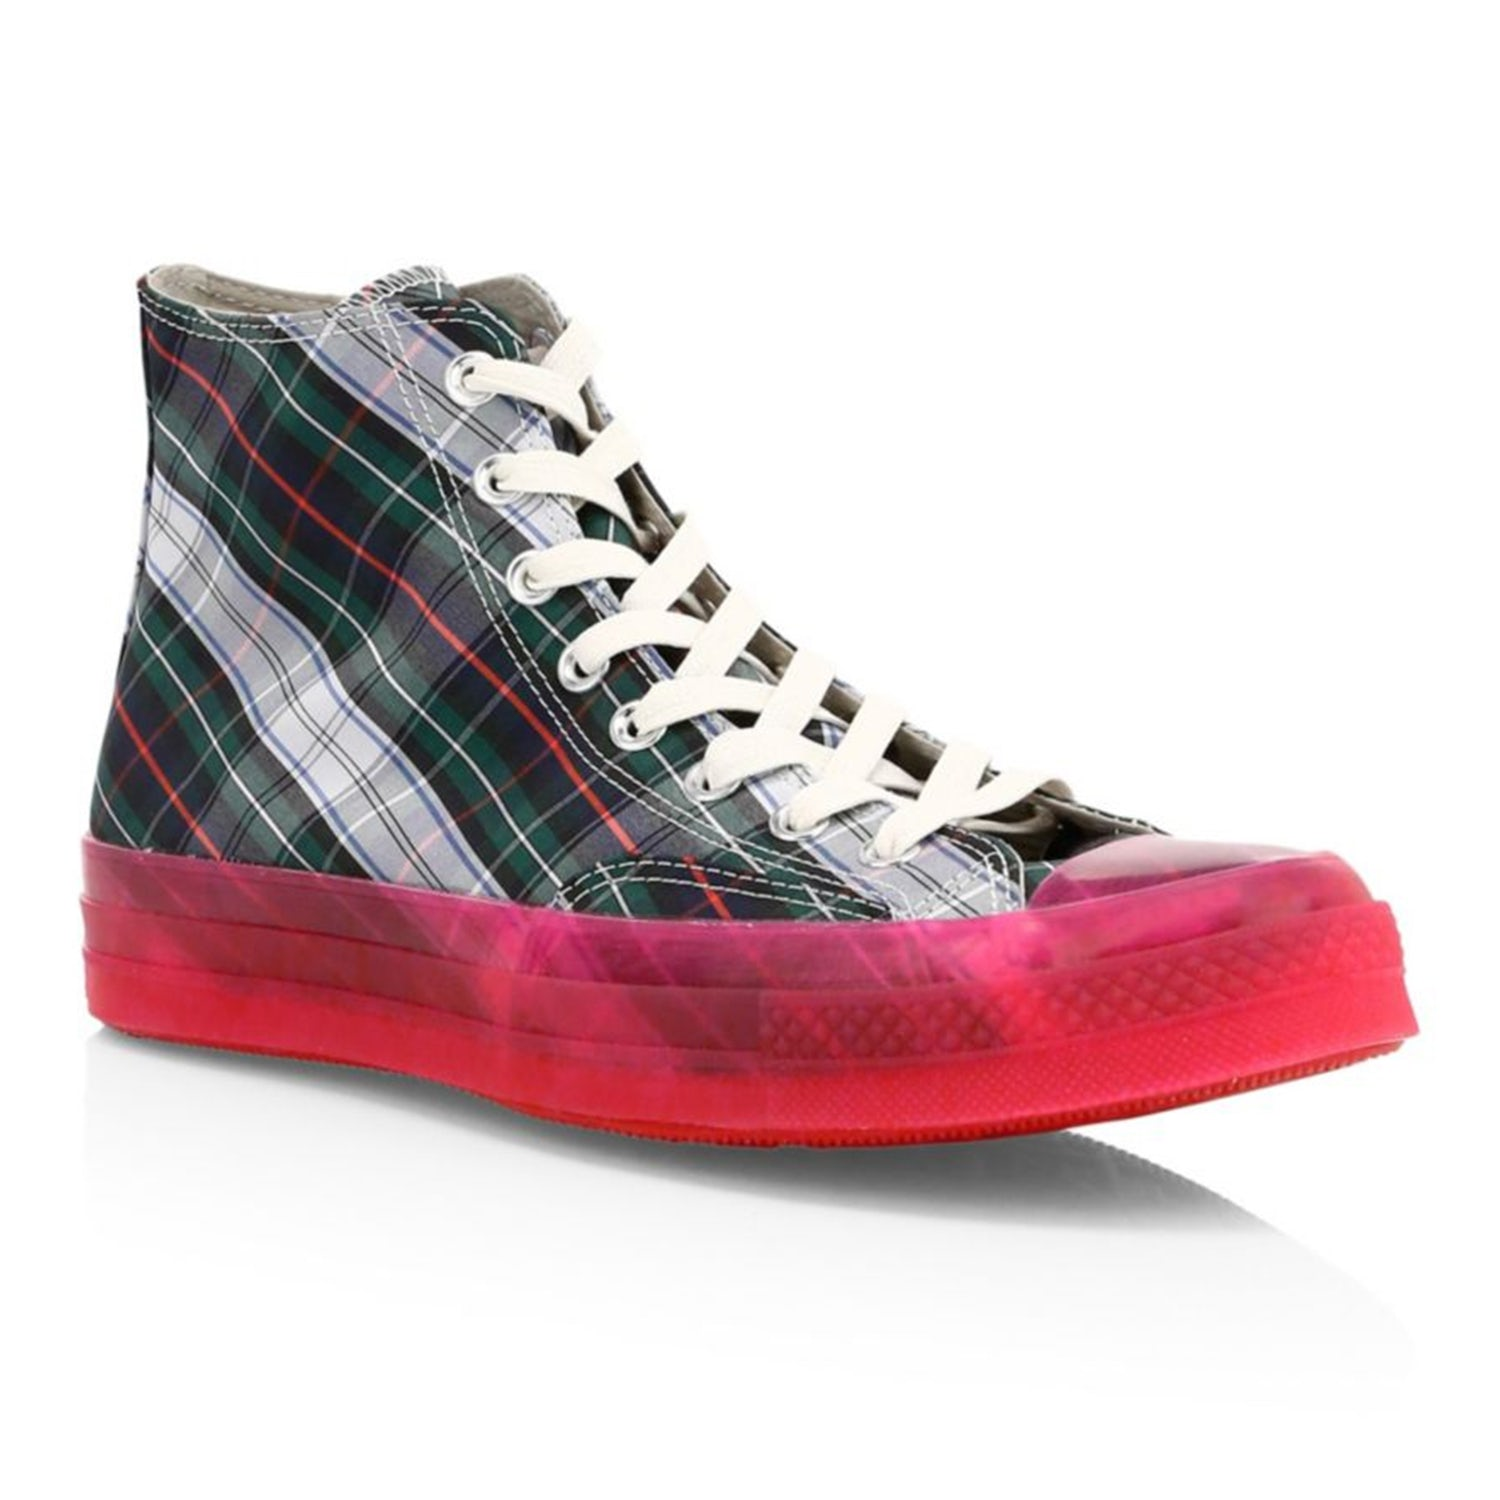 converse plaid translucent